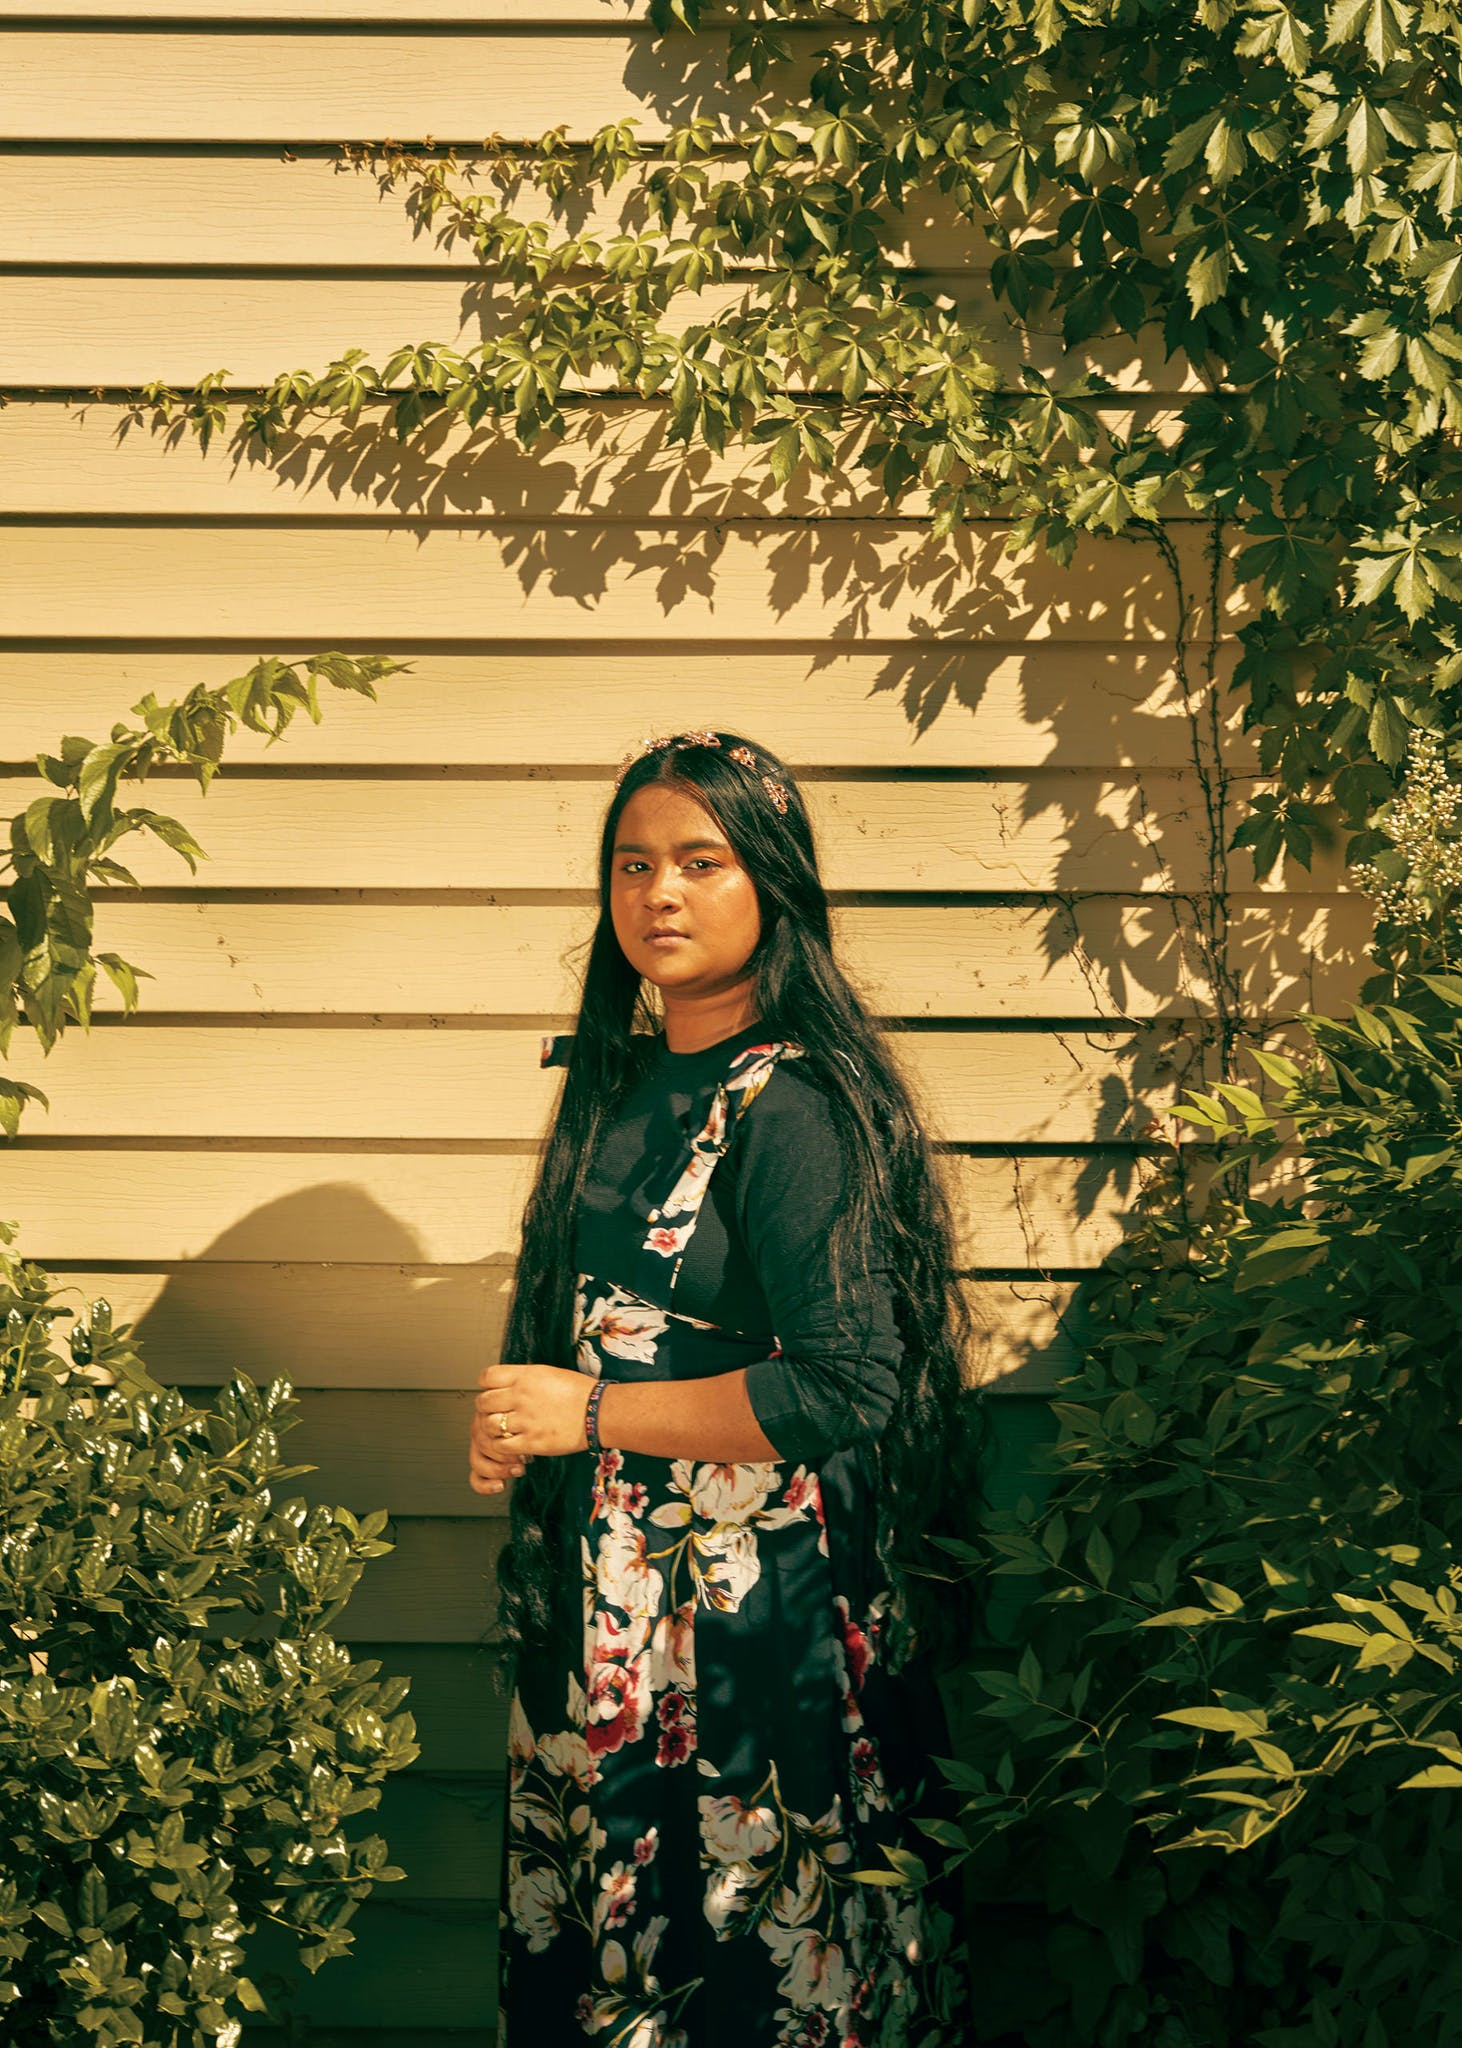 """Every time the jasmine plant blooms in their backyard, Twa Bee's mother picks the flowers and weaves them into a crown. """"We'll wear it on our heads, or you can wrap around your bun or braid it in your hair,"""" Bee, 18, explains. Jasmine reminds them of Thailand, where Bee was born, though her family is originally from Burma. """"There's a lot of jasmine in Thailand, so it's really, really pretty. My mom and other people from Thailand have it here because it makes them feel at home and it smells really good."""" When Bee moved to Dallas, she started participating in Eagle Scholars, a college readiness program, where she discovered that her passion was to become an immigration lawyer. Though Bee wasn't planning on attending prom, she couldn't wait for her graduation from Emmett J. Conrad High School. """"I worked so hard to graduate, and now it's cancelled,"""" she says. """"They're having this virtual thing, which isn't really a graduation. I wanted to walk the stage."""" She hopes to attend the University of Texas at Arlington and major in political science before attending law school. Due to the coronavirus, however, """"Some scholarships have been reduced, so it kind of sucks because there's less money for us."""""""